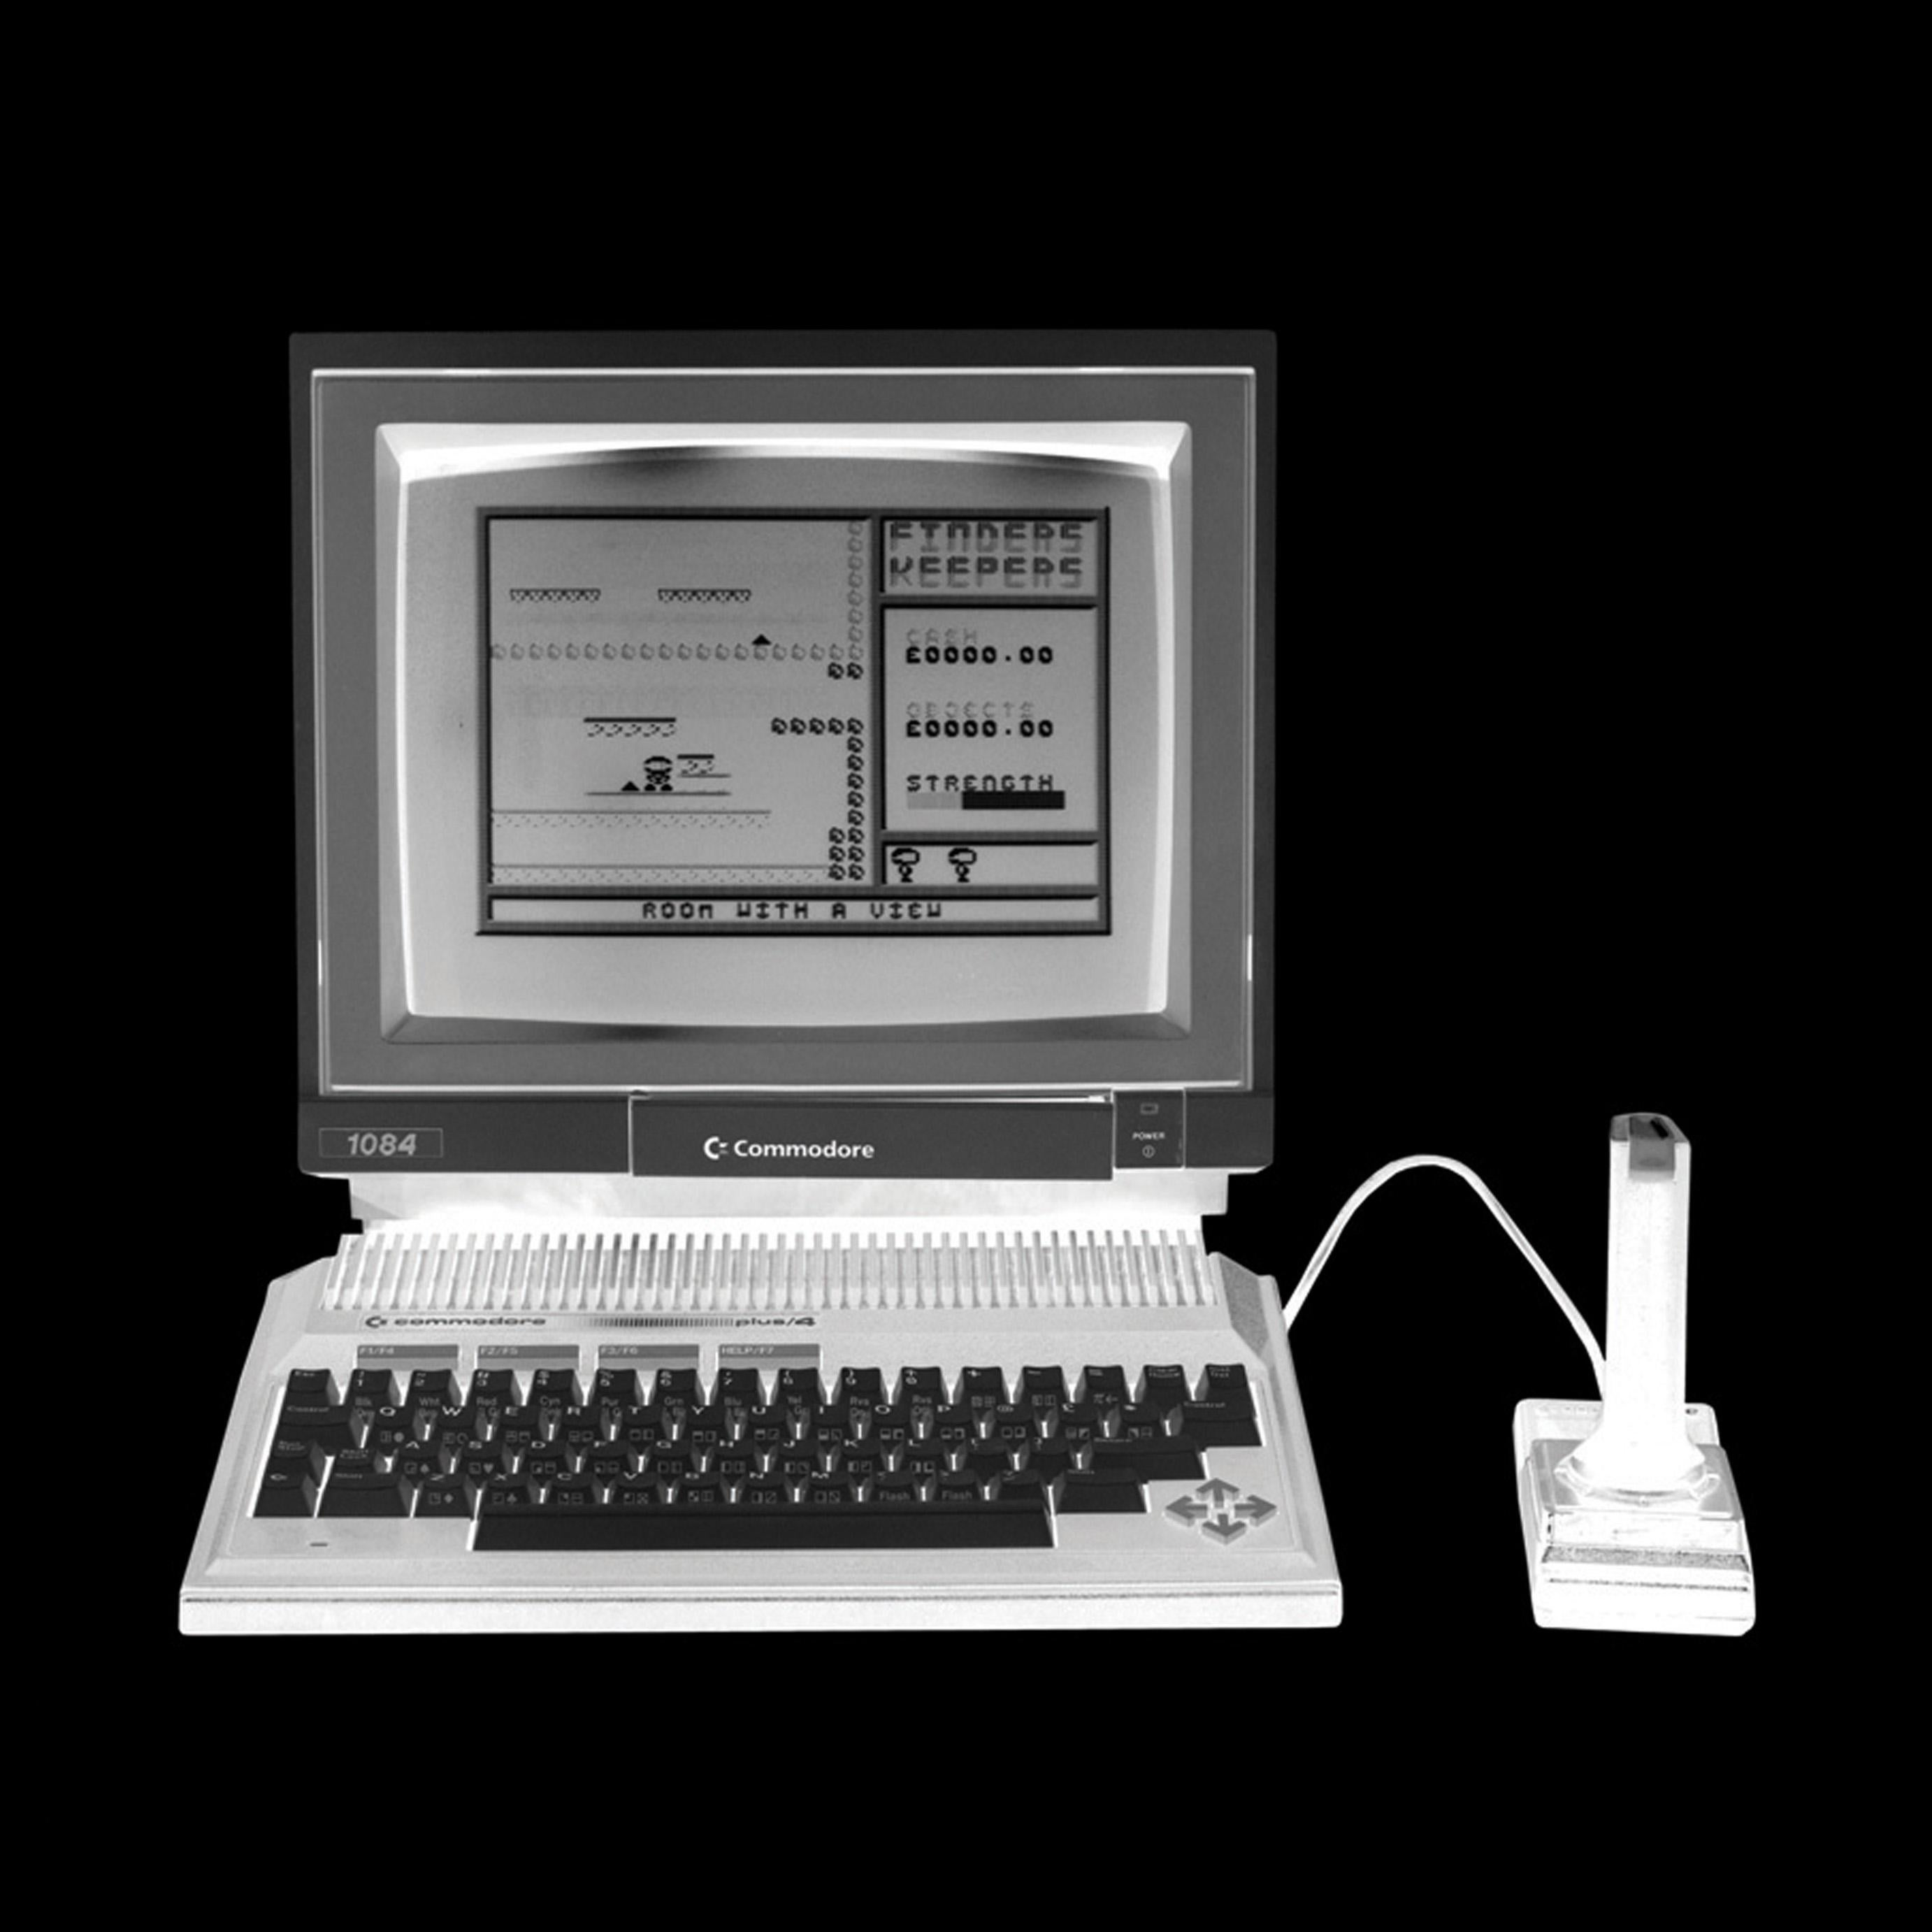 Power - Personal Computer Series - Black and White Graphic Photography